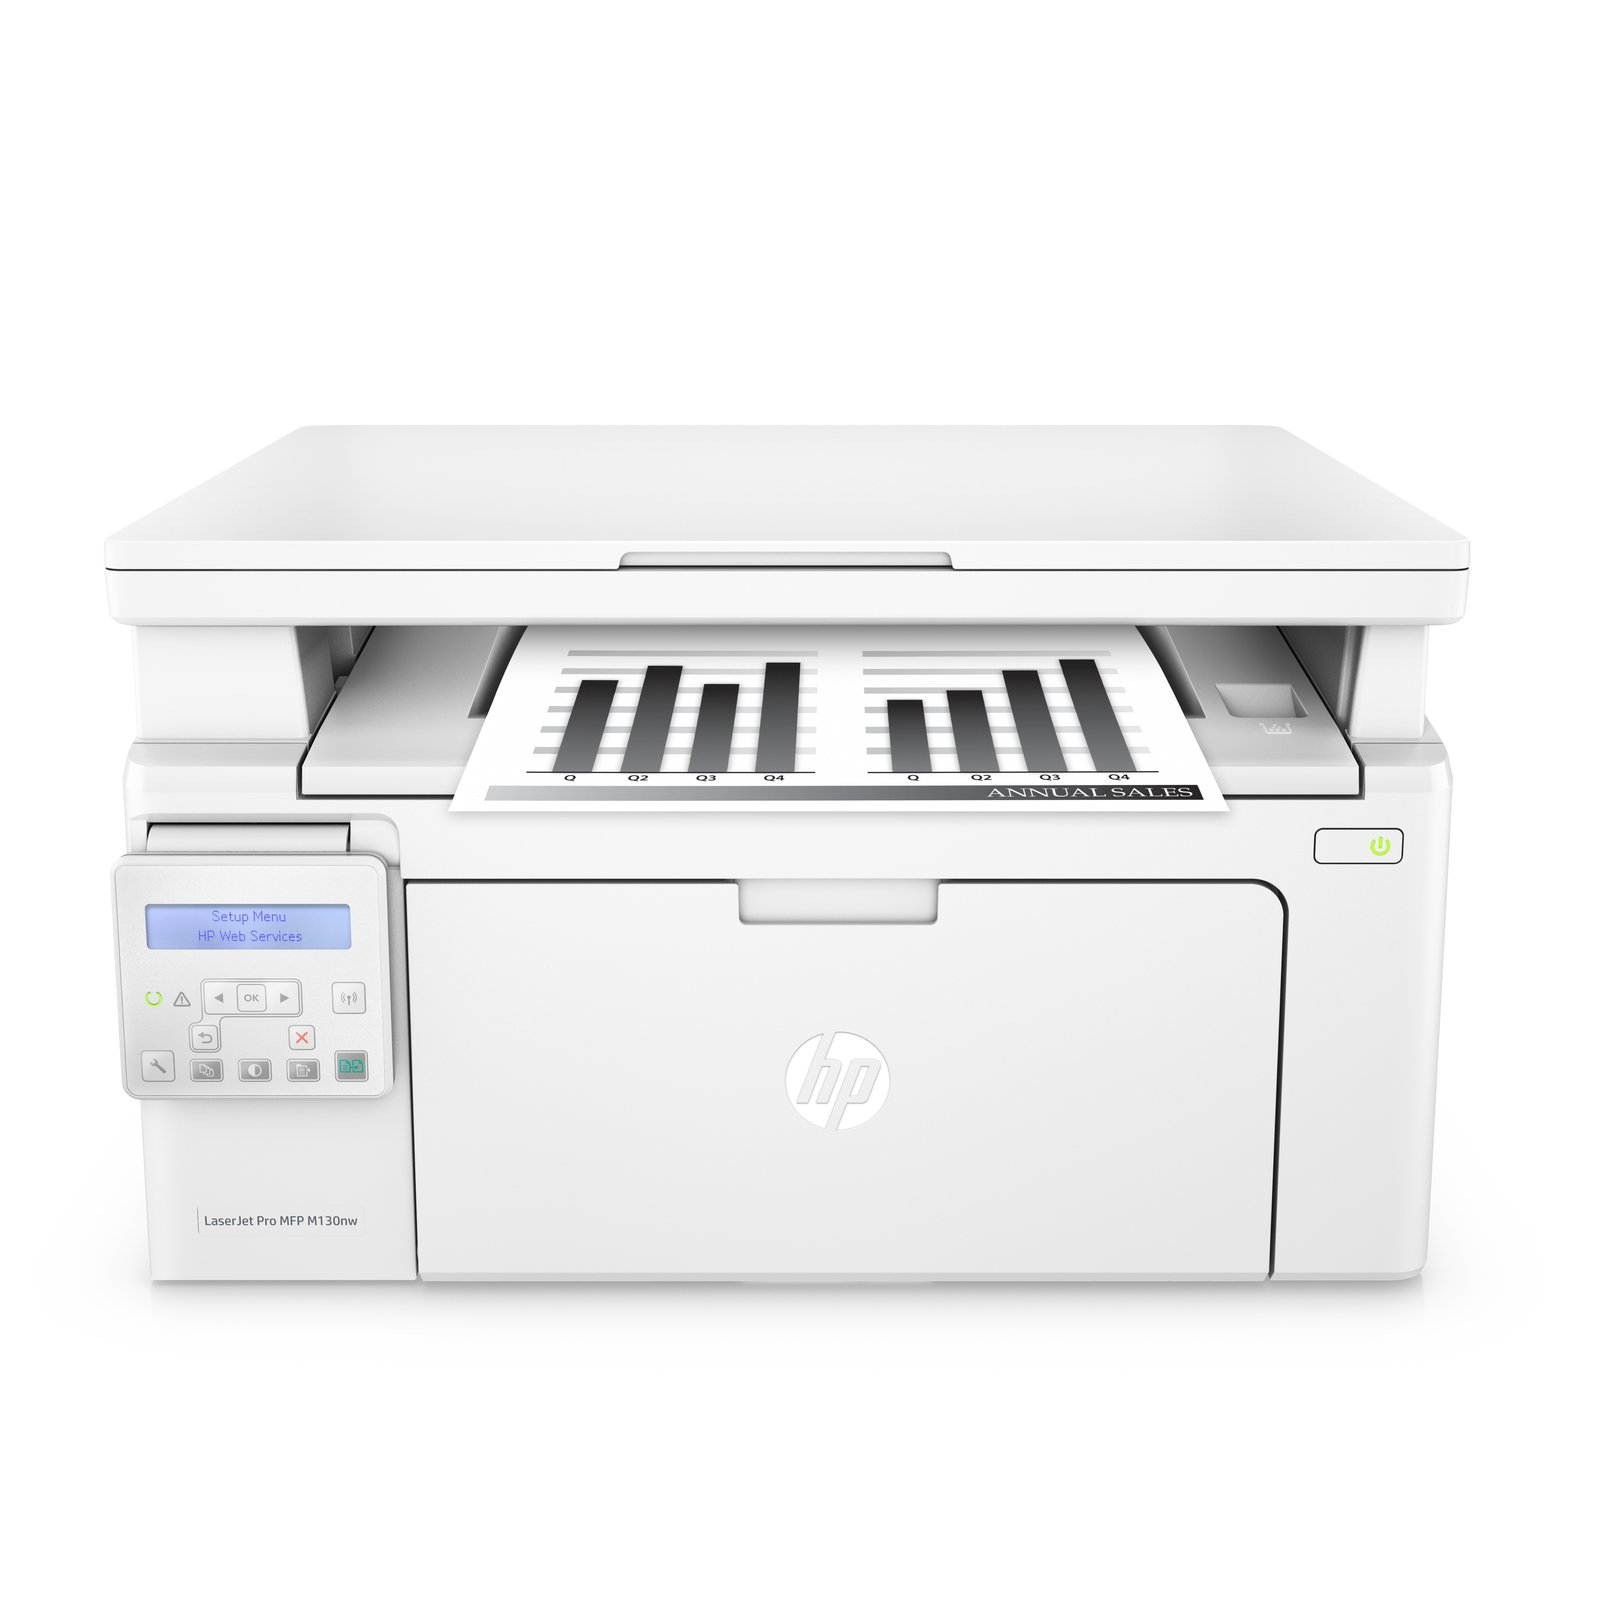 HP LaserJet Pro M130nw All-in-One Wireless Laser Printer, Amazon Dash Replenishment ready (G3Q58A). Replaces HP M125nw Laser Printer by HP